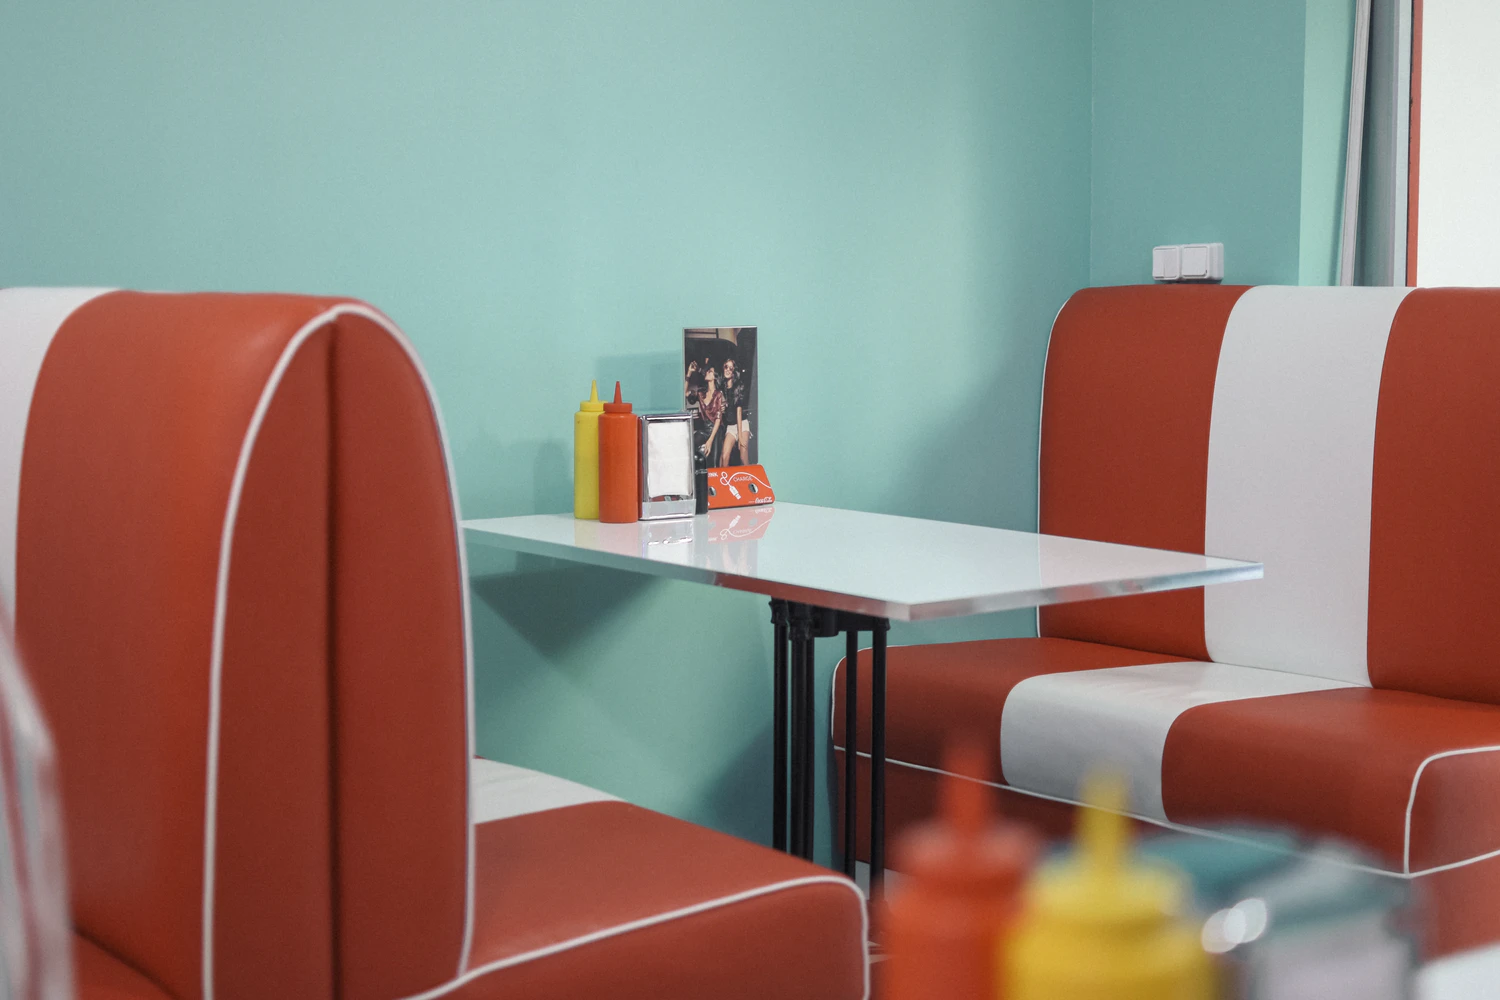 booth seats in a quick service restaurant